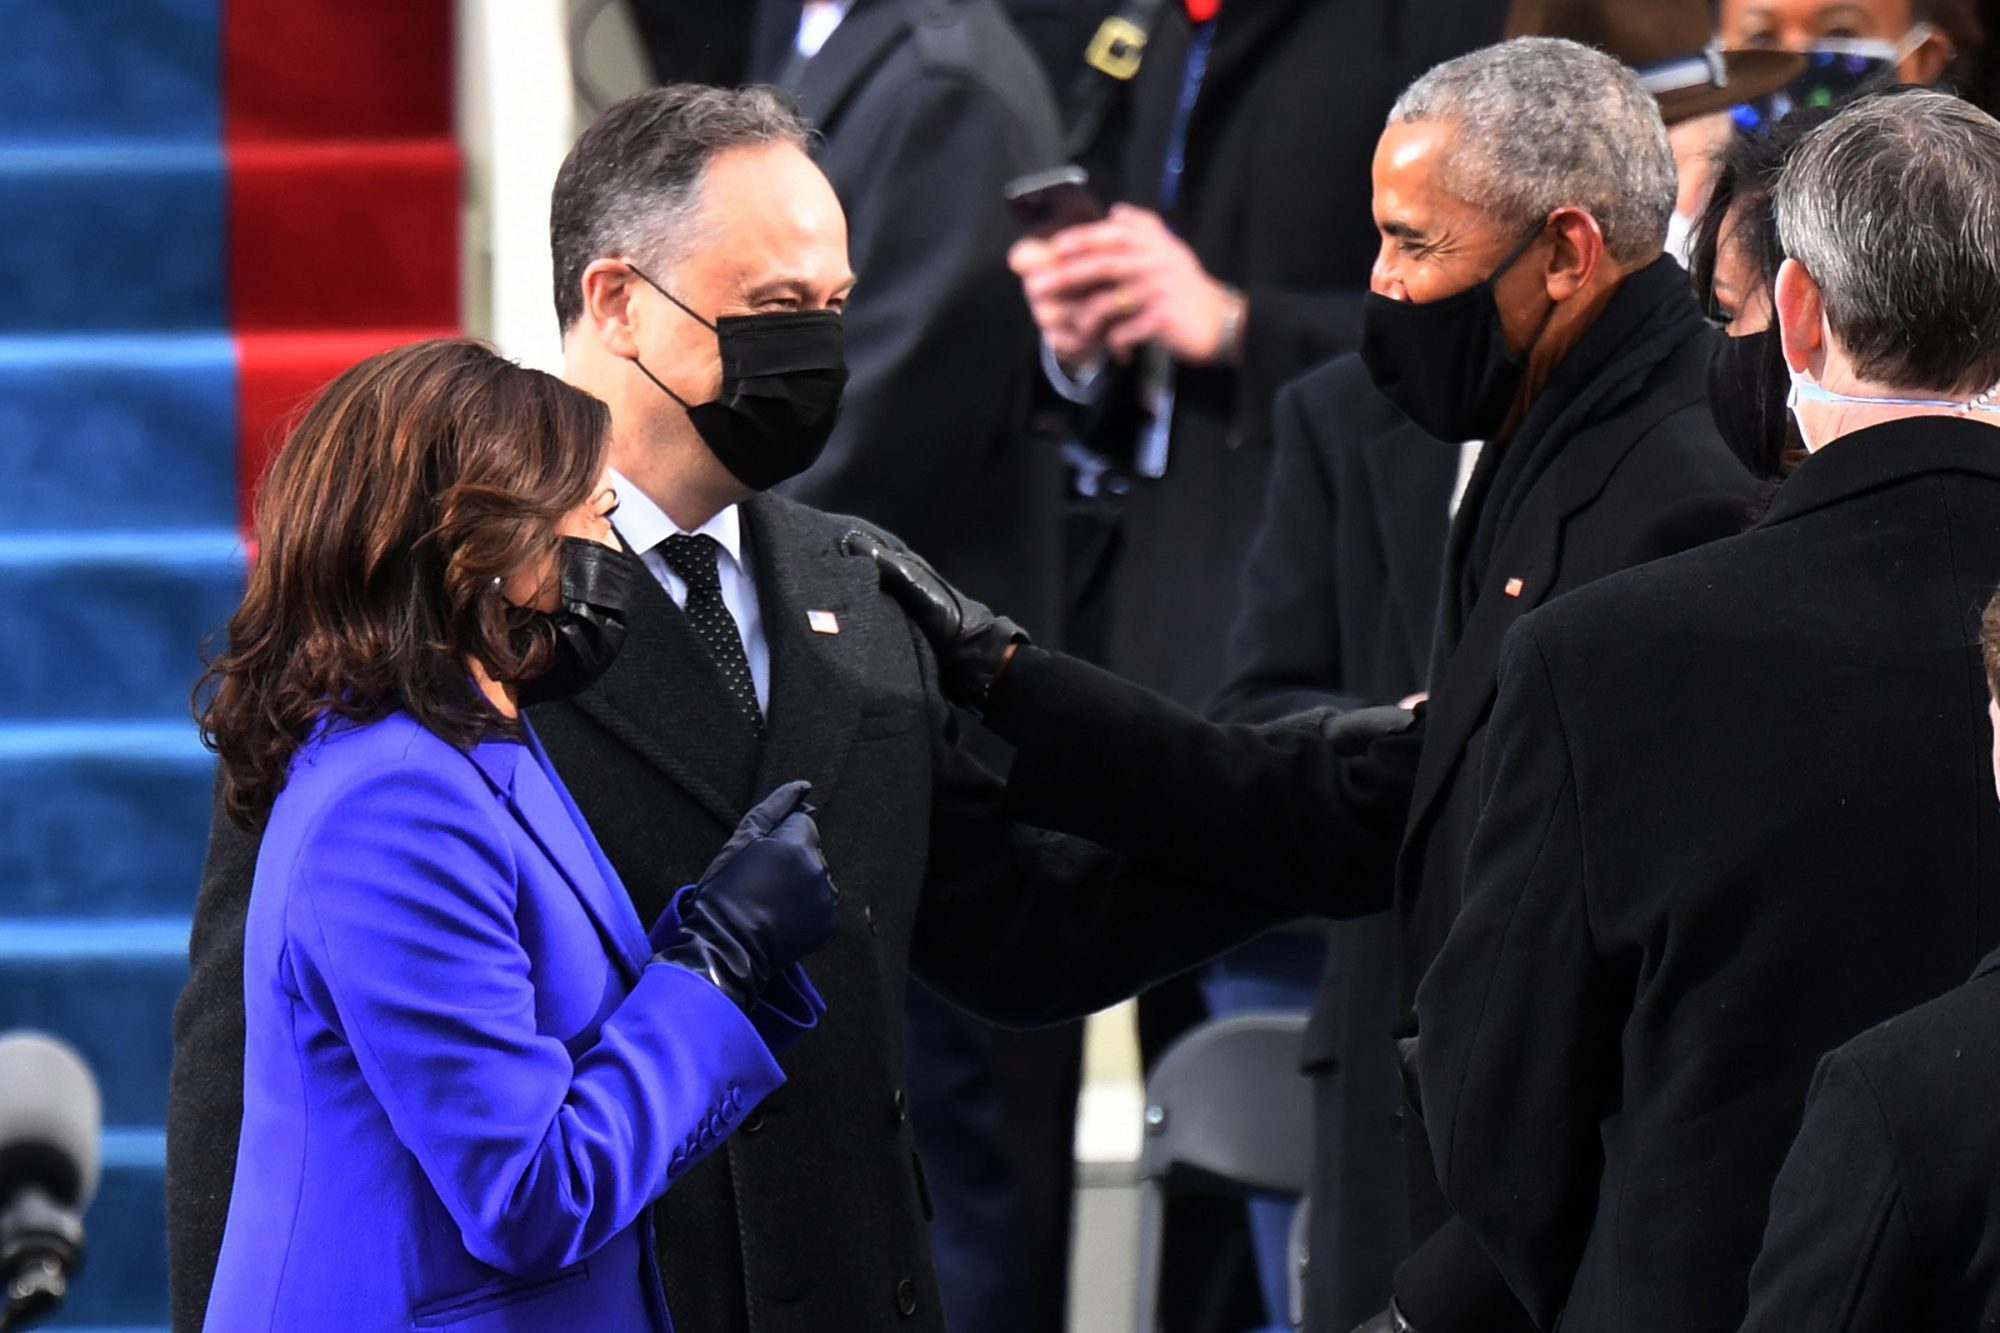 US Vice President-elect Kamala Harris (L) and incoming Second Gentleman Doug Emhoff speak with Former US President Barack Obama as they arrive for the inauguration of Joe Biden as the 46th US President on January 20, 2021